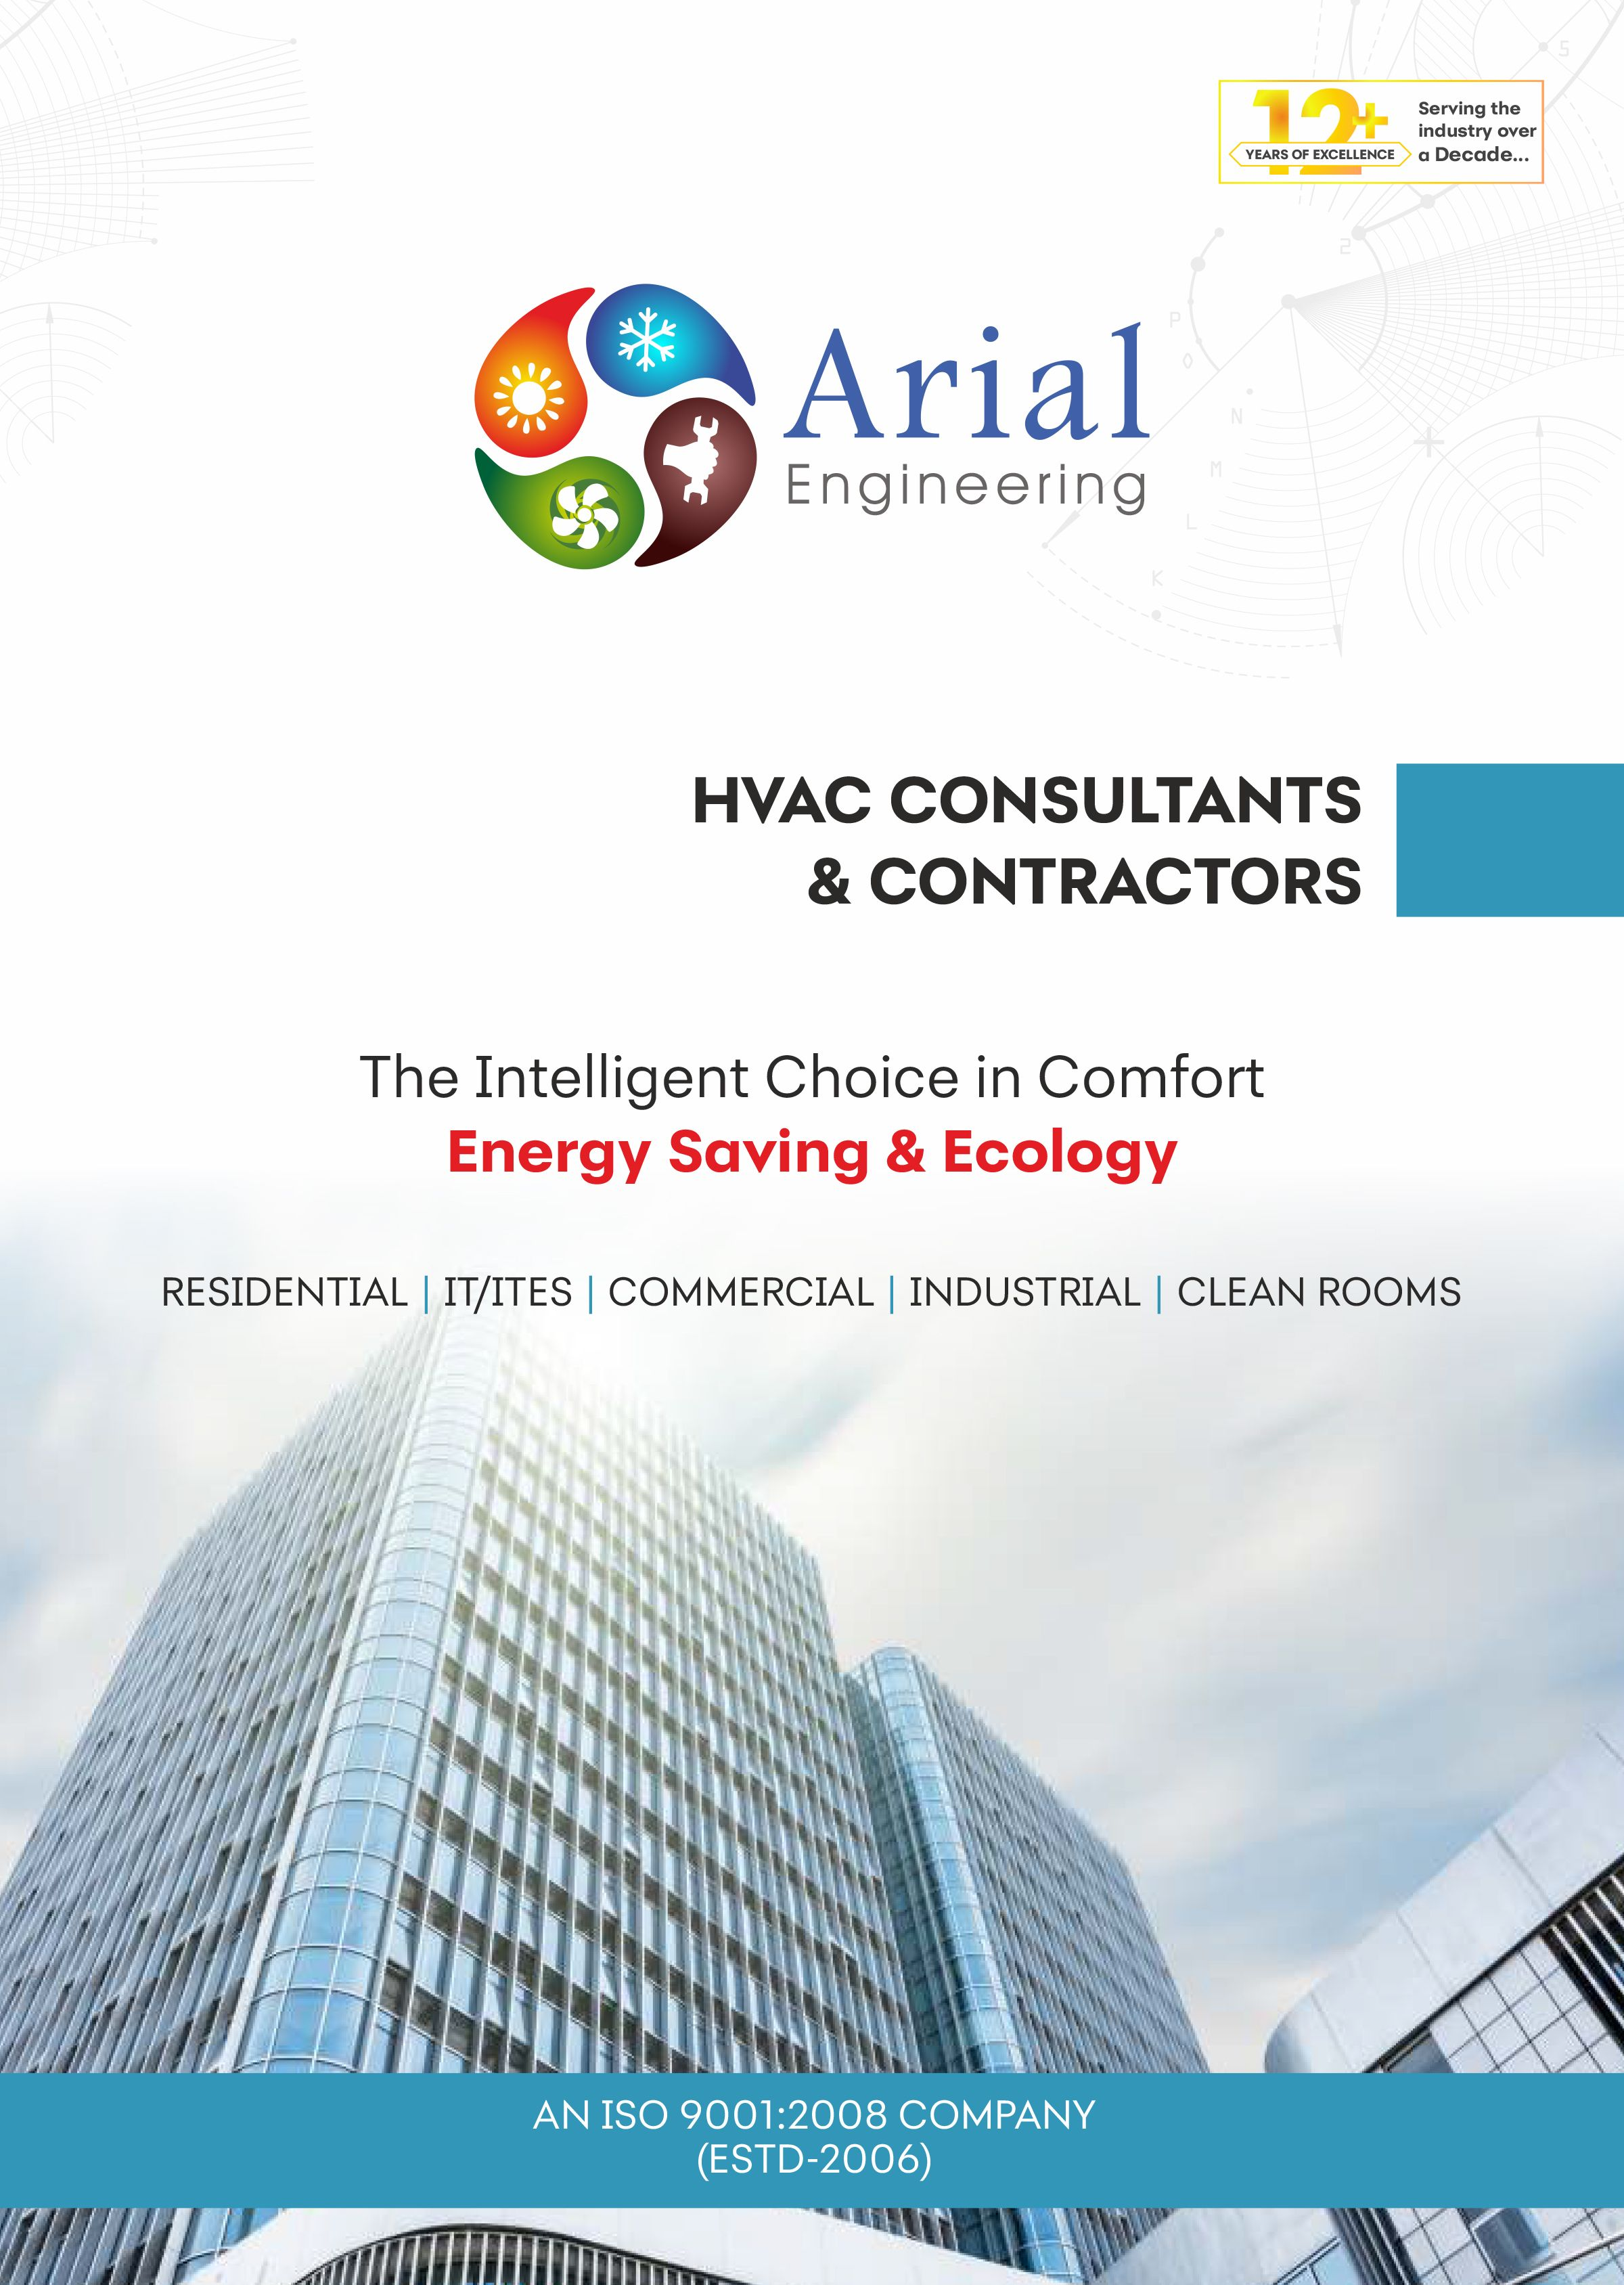 hight resolution of company brochure arial engineering services